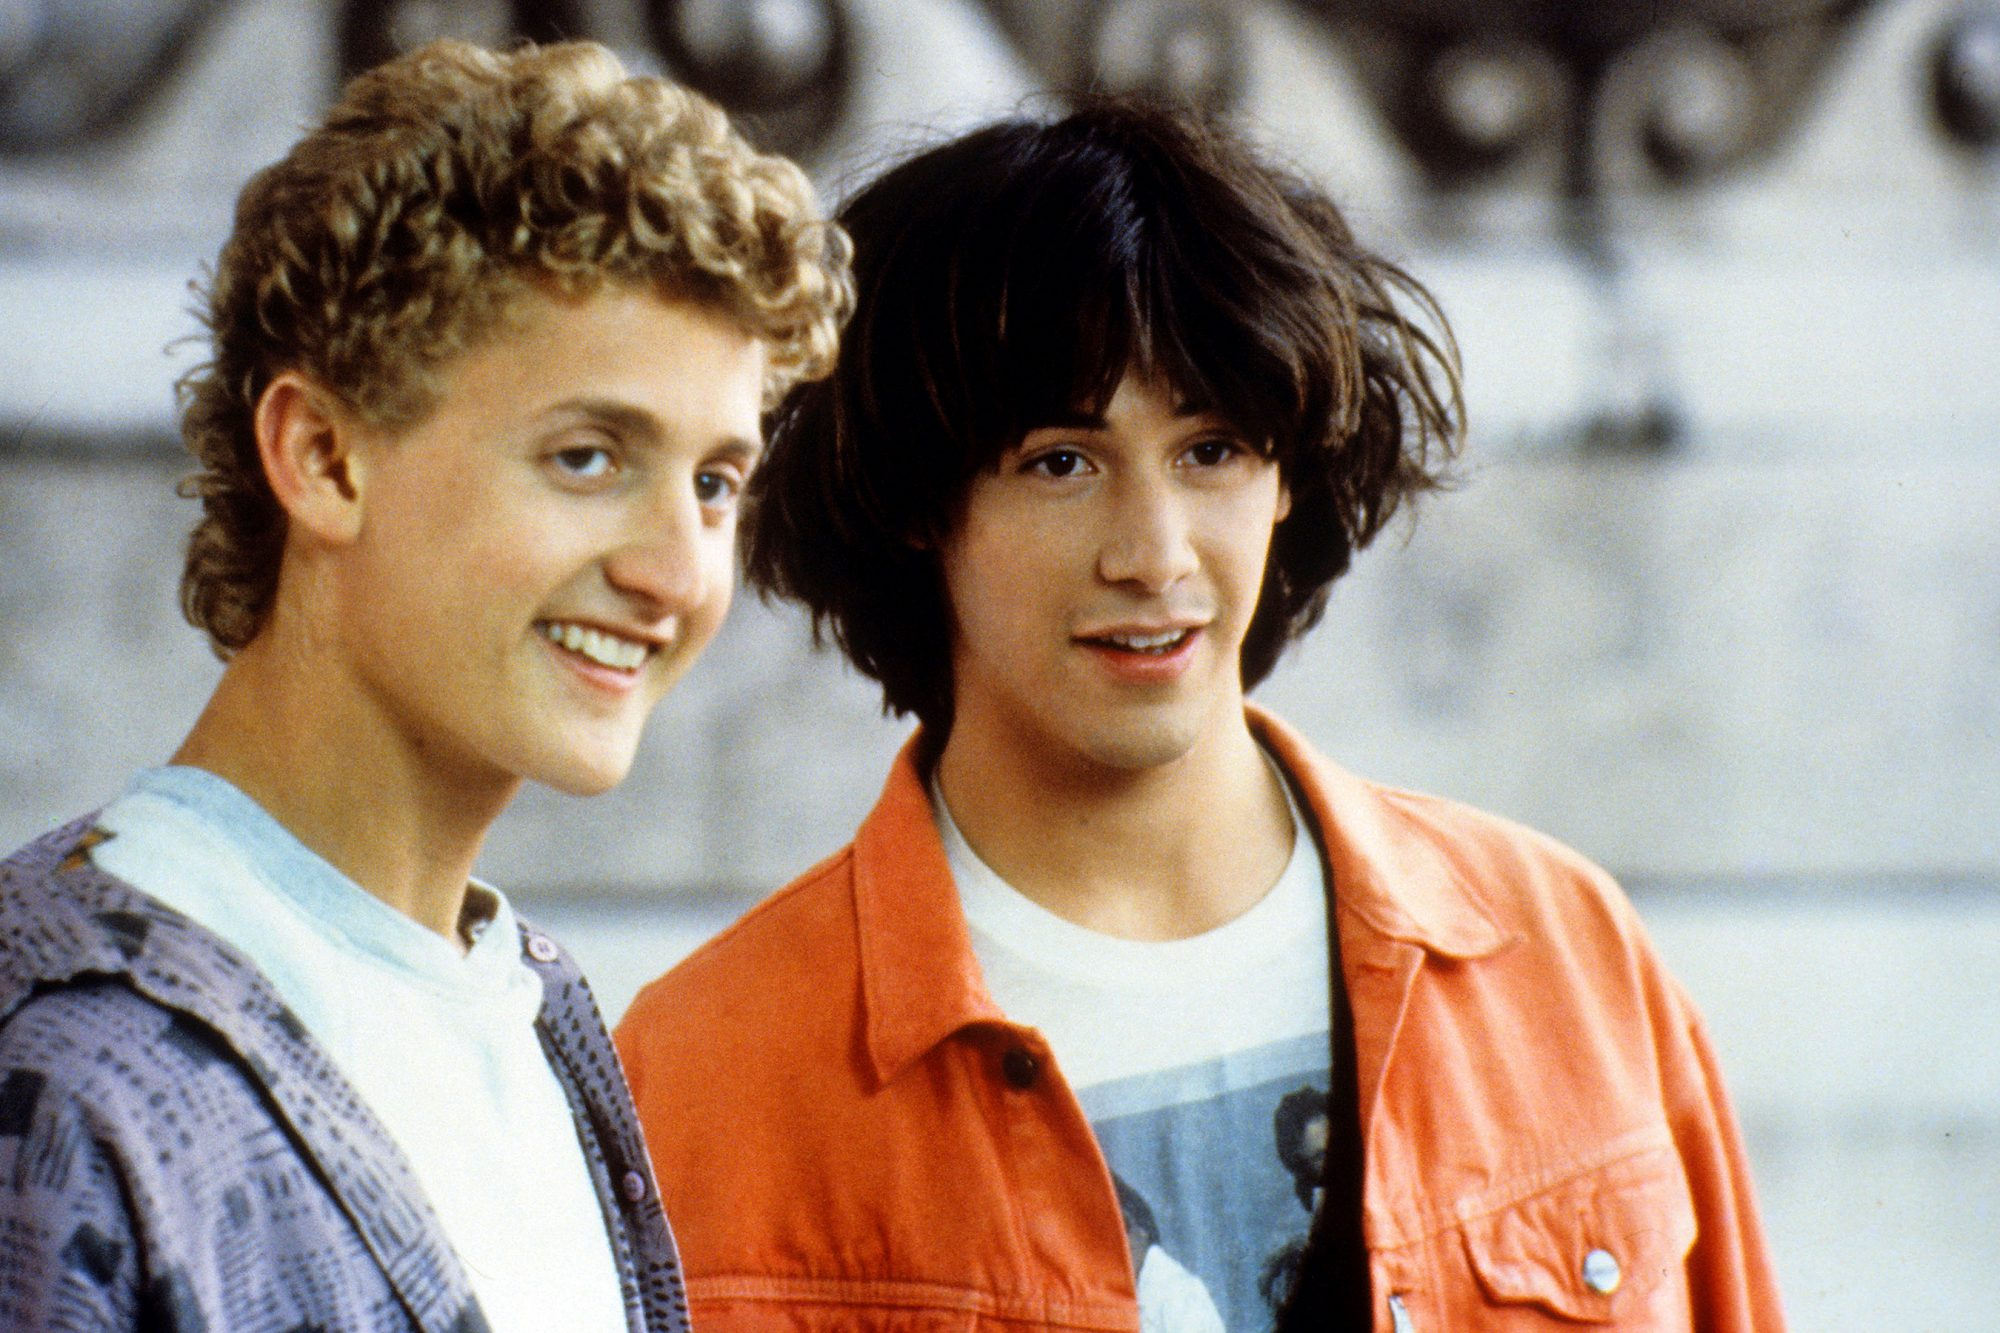 6. Bill & Ted's Excellent Adventure (1989)